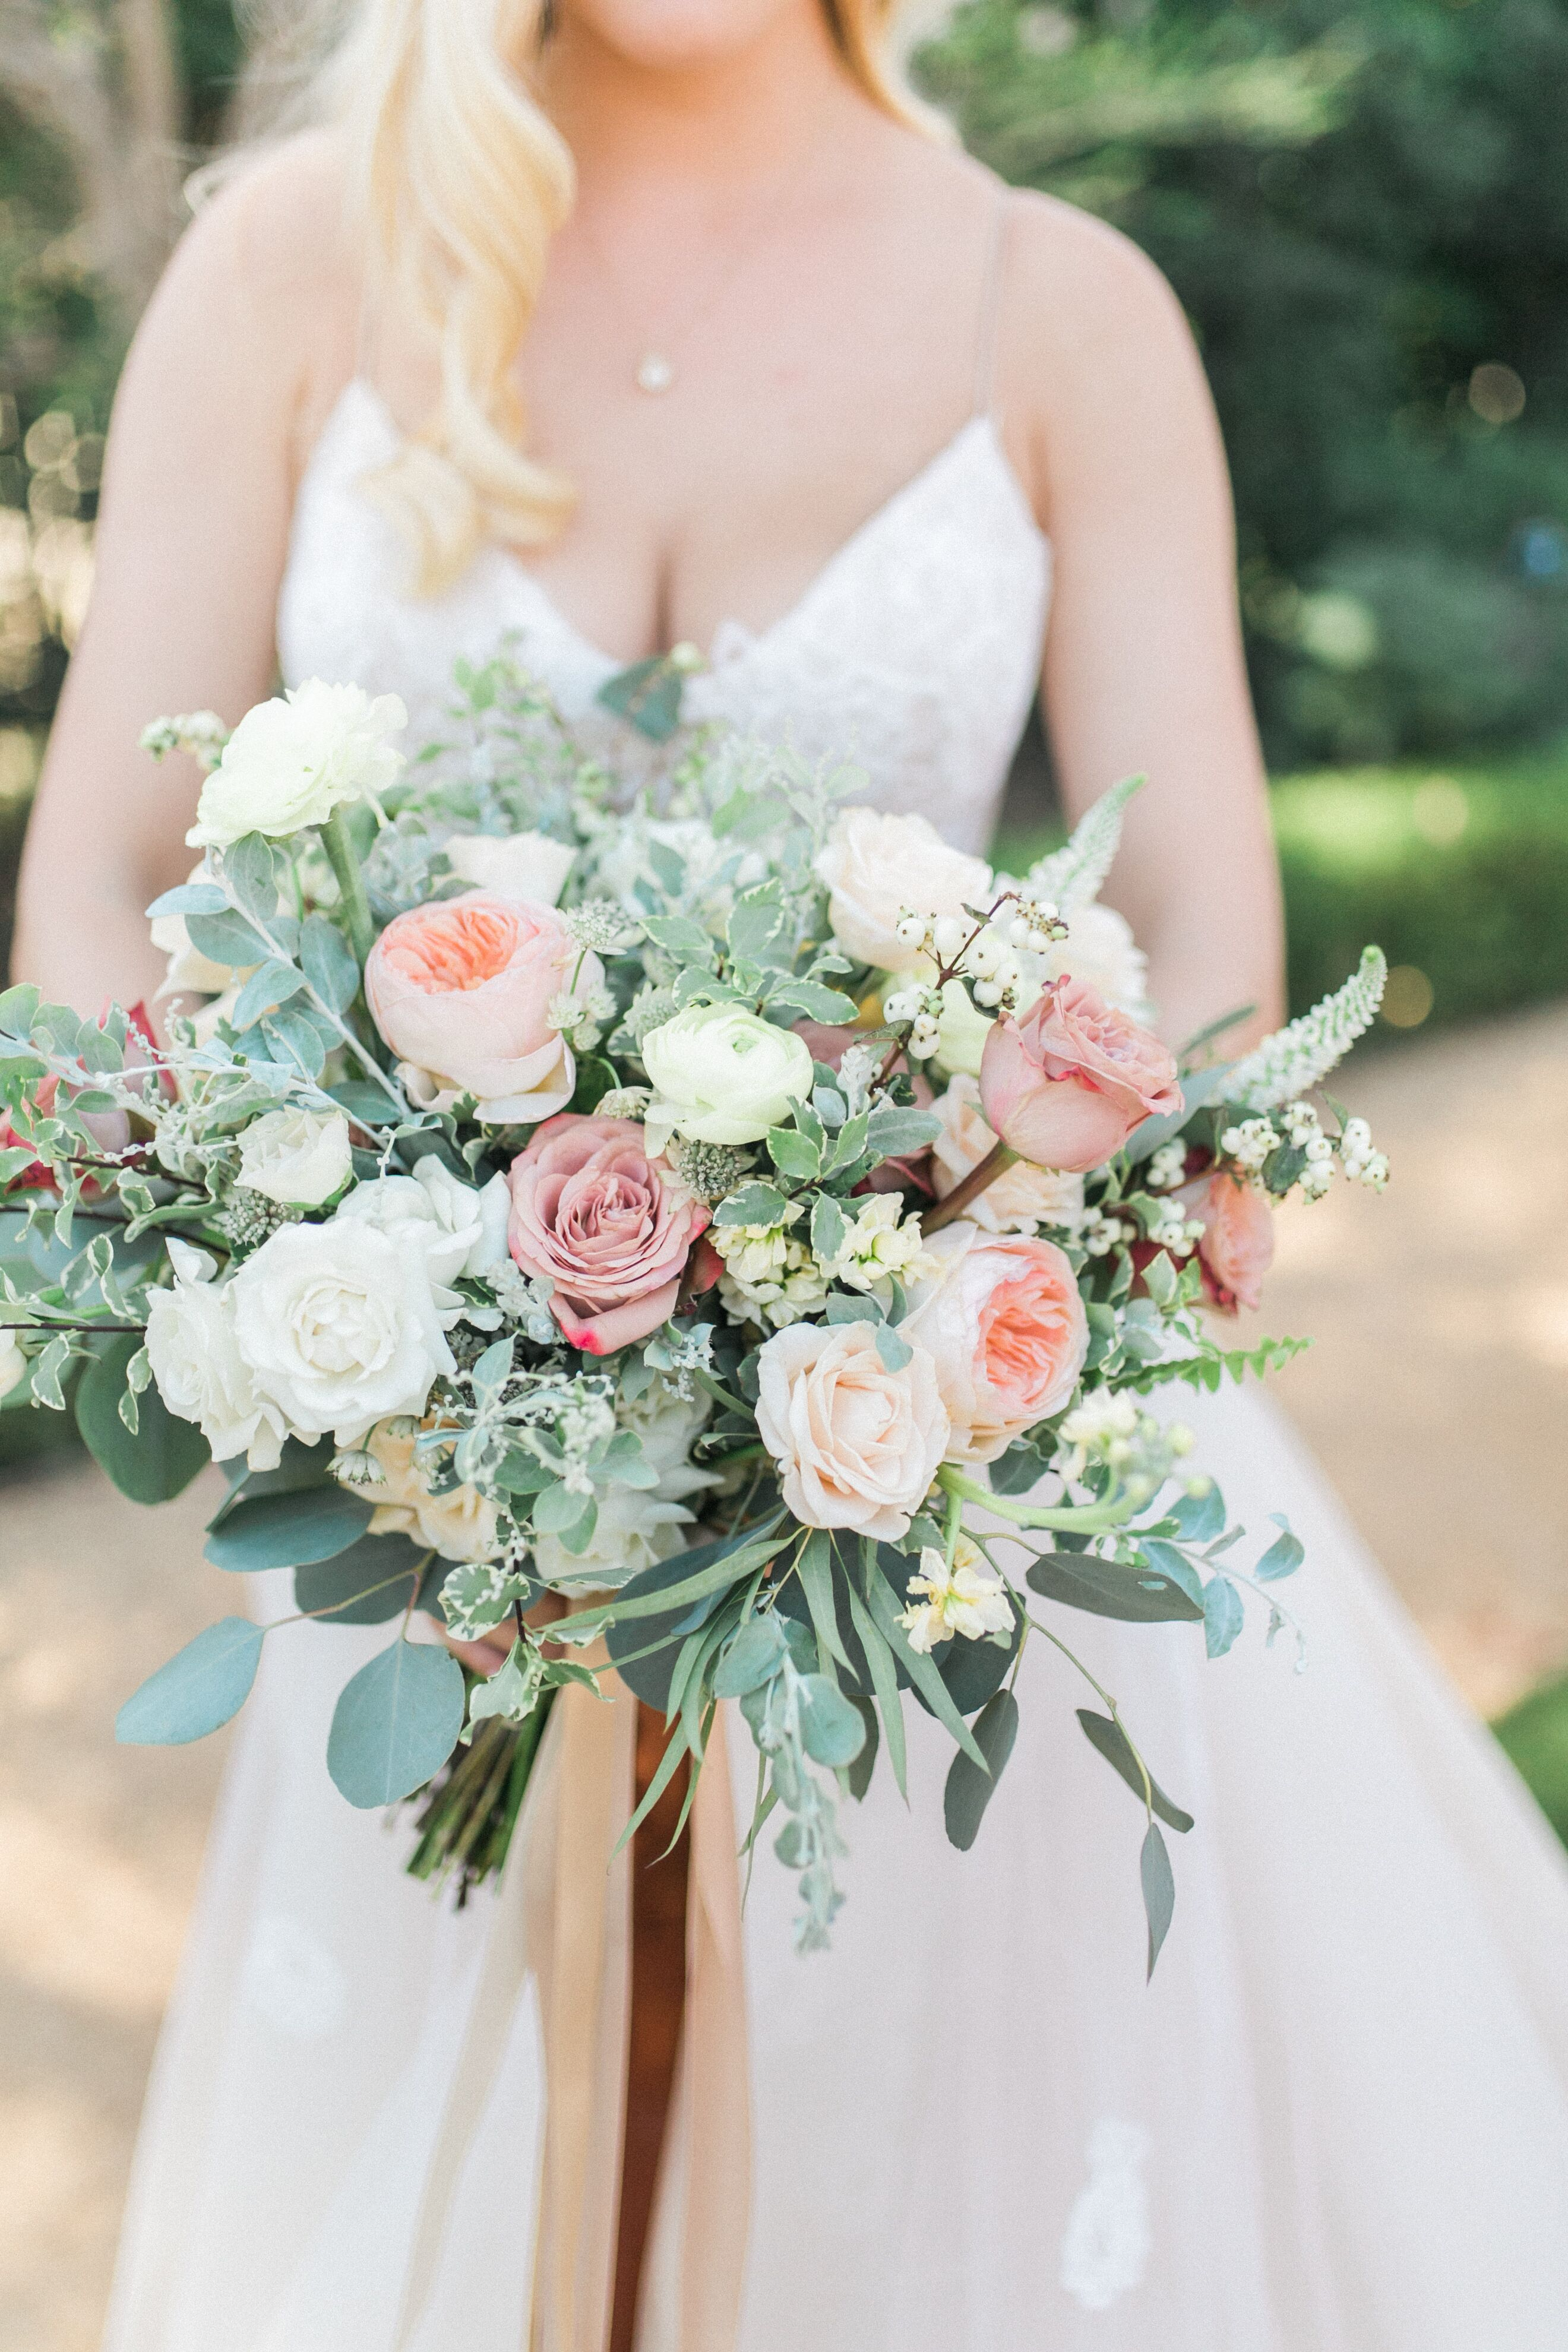 Earthy Bridal Bouquet With Blush And Cream Roses